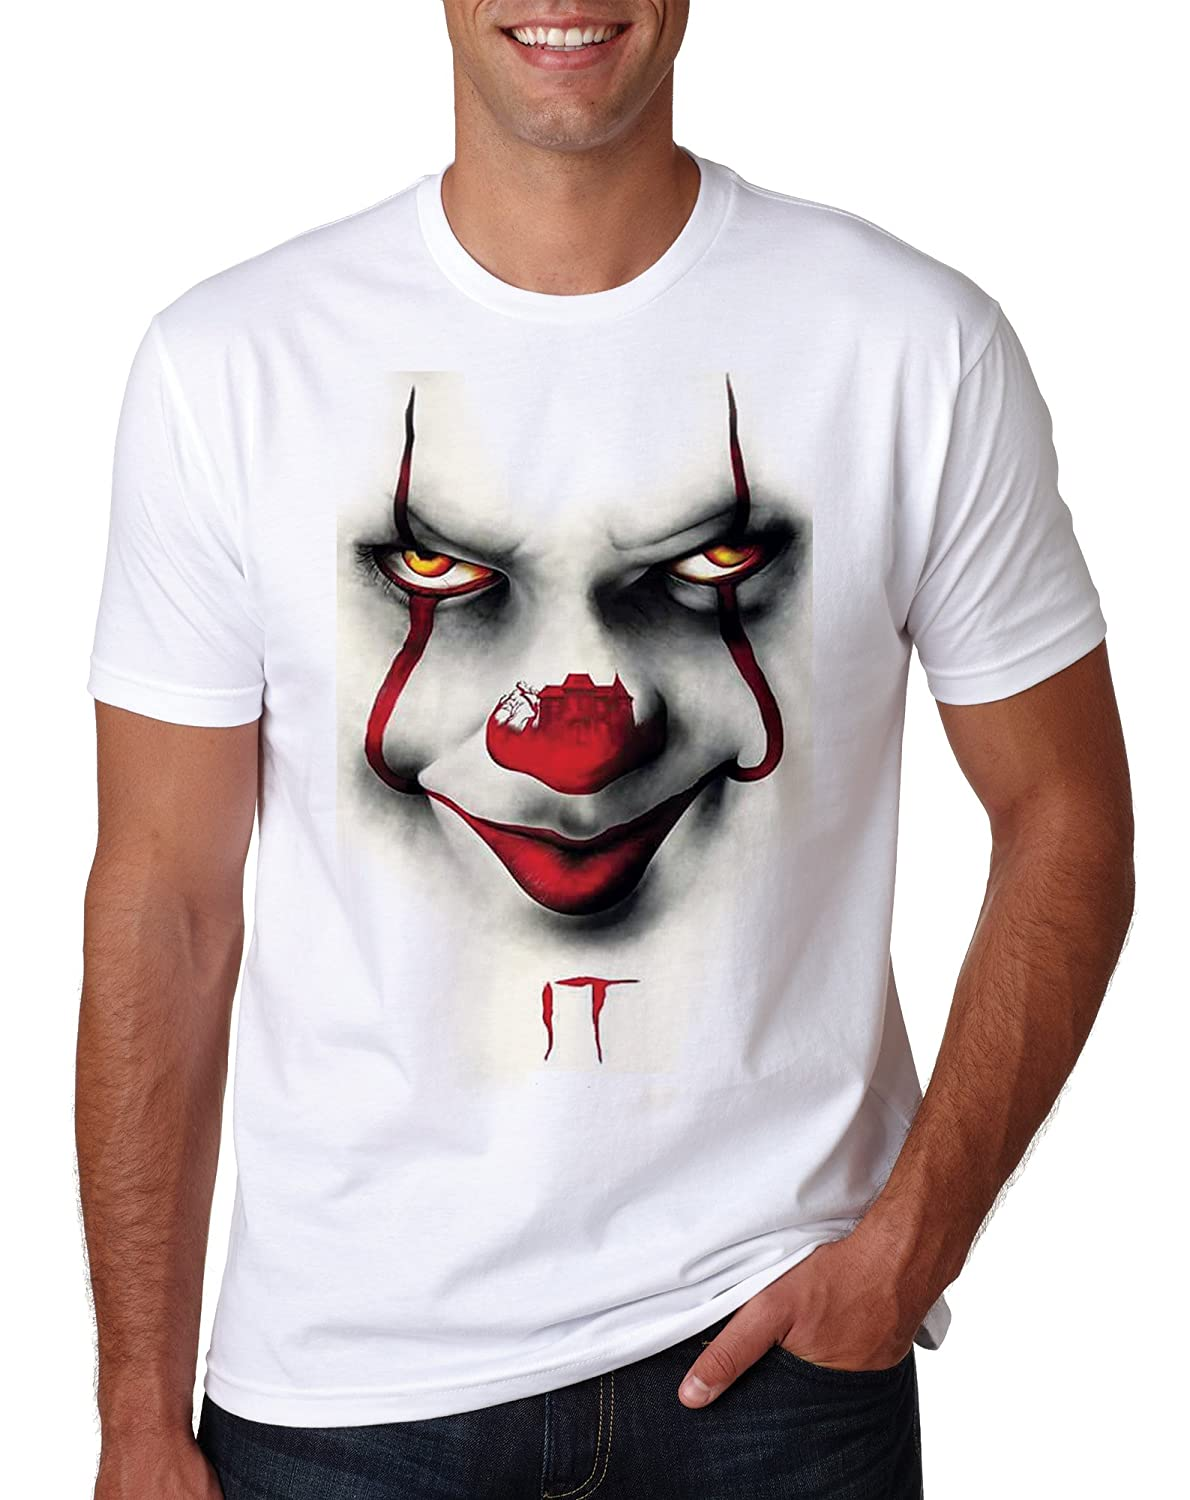 e342cf10a 2019 Clown King Stephen T Pennywise Float Shirt Tee We All Down Here Horror  Tshirt Top Mens Inspired Funny Creepy Scary: Amazon.co.uk: Clothing